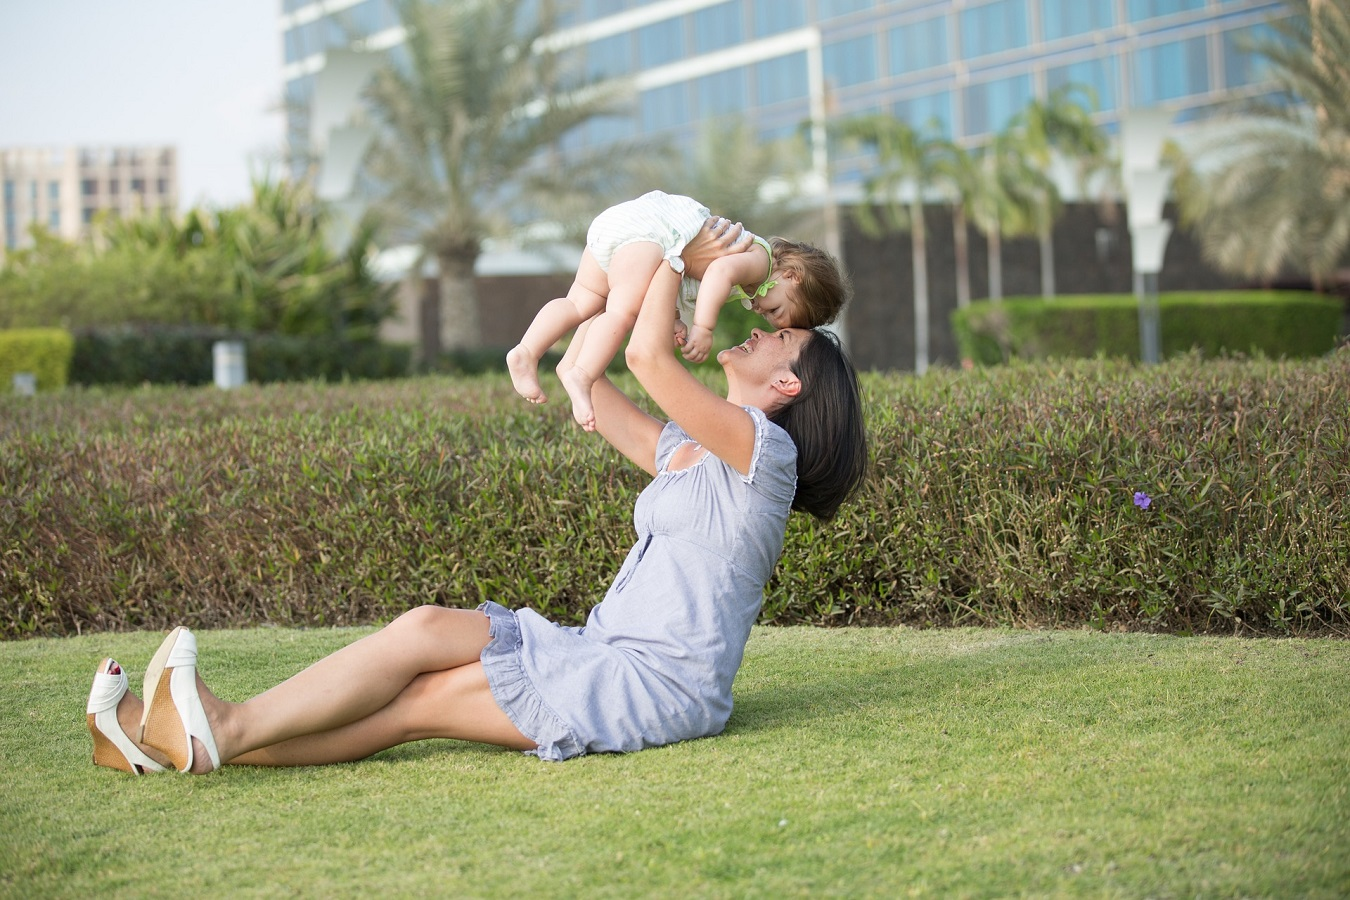 Mother and baby: 3 Tips for an Easier Return following Maternity Leave